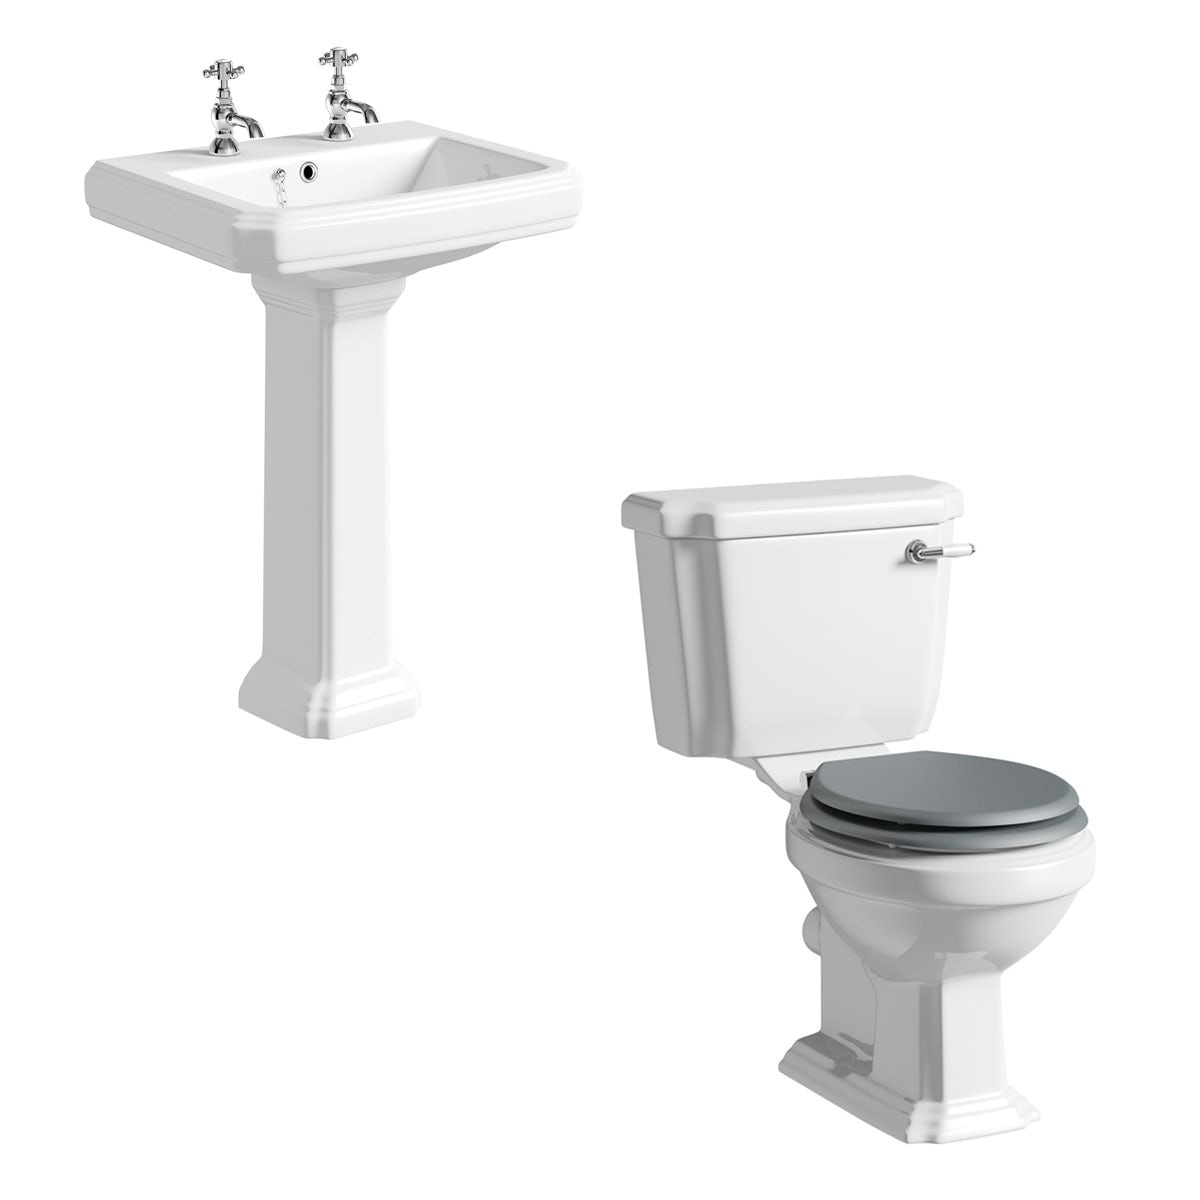 The Bath Co. Dulwich cloakroom suite with grey seat and full pedestal basin 615mm